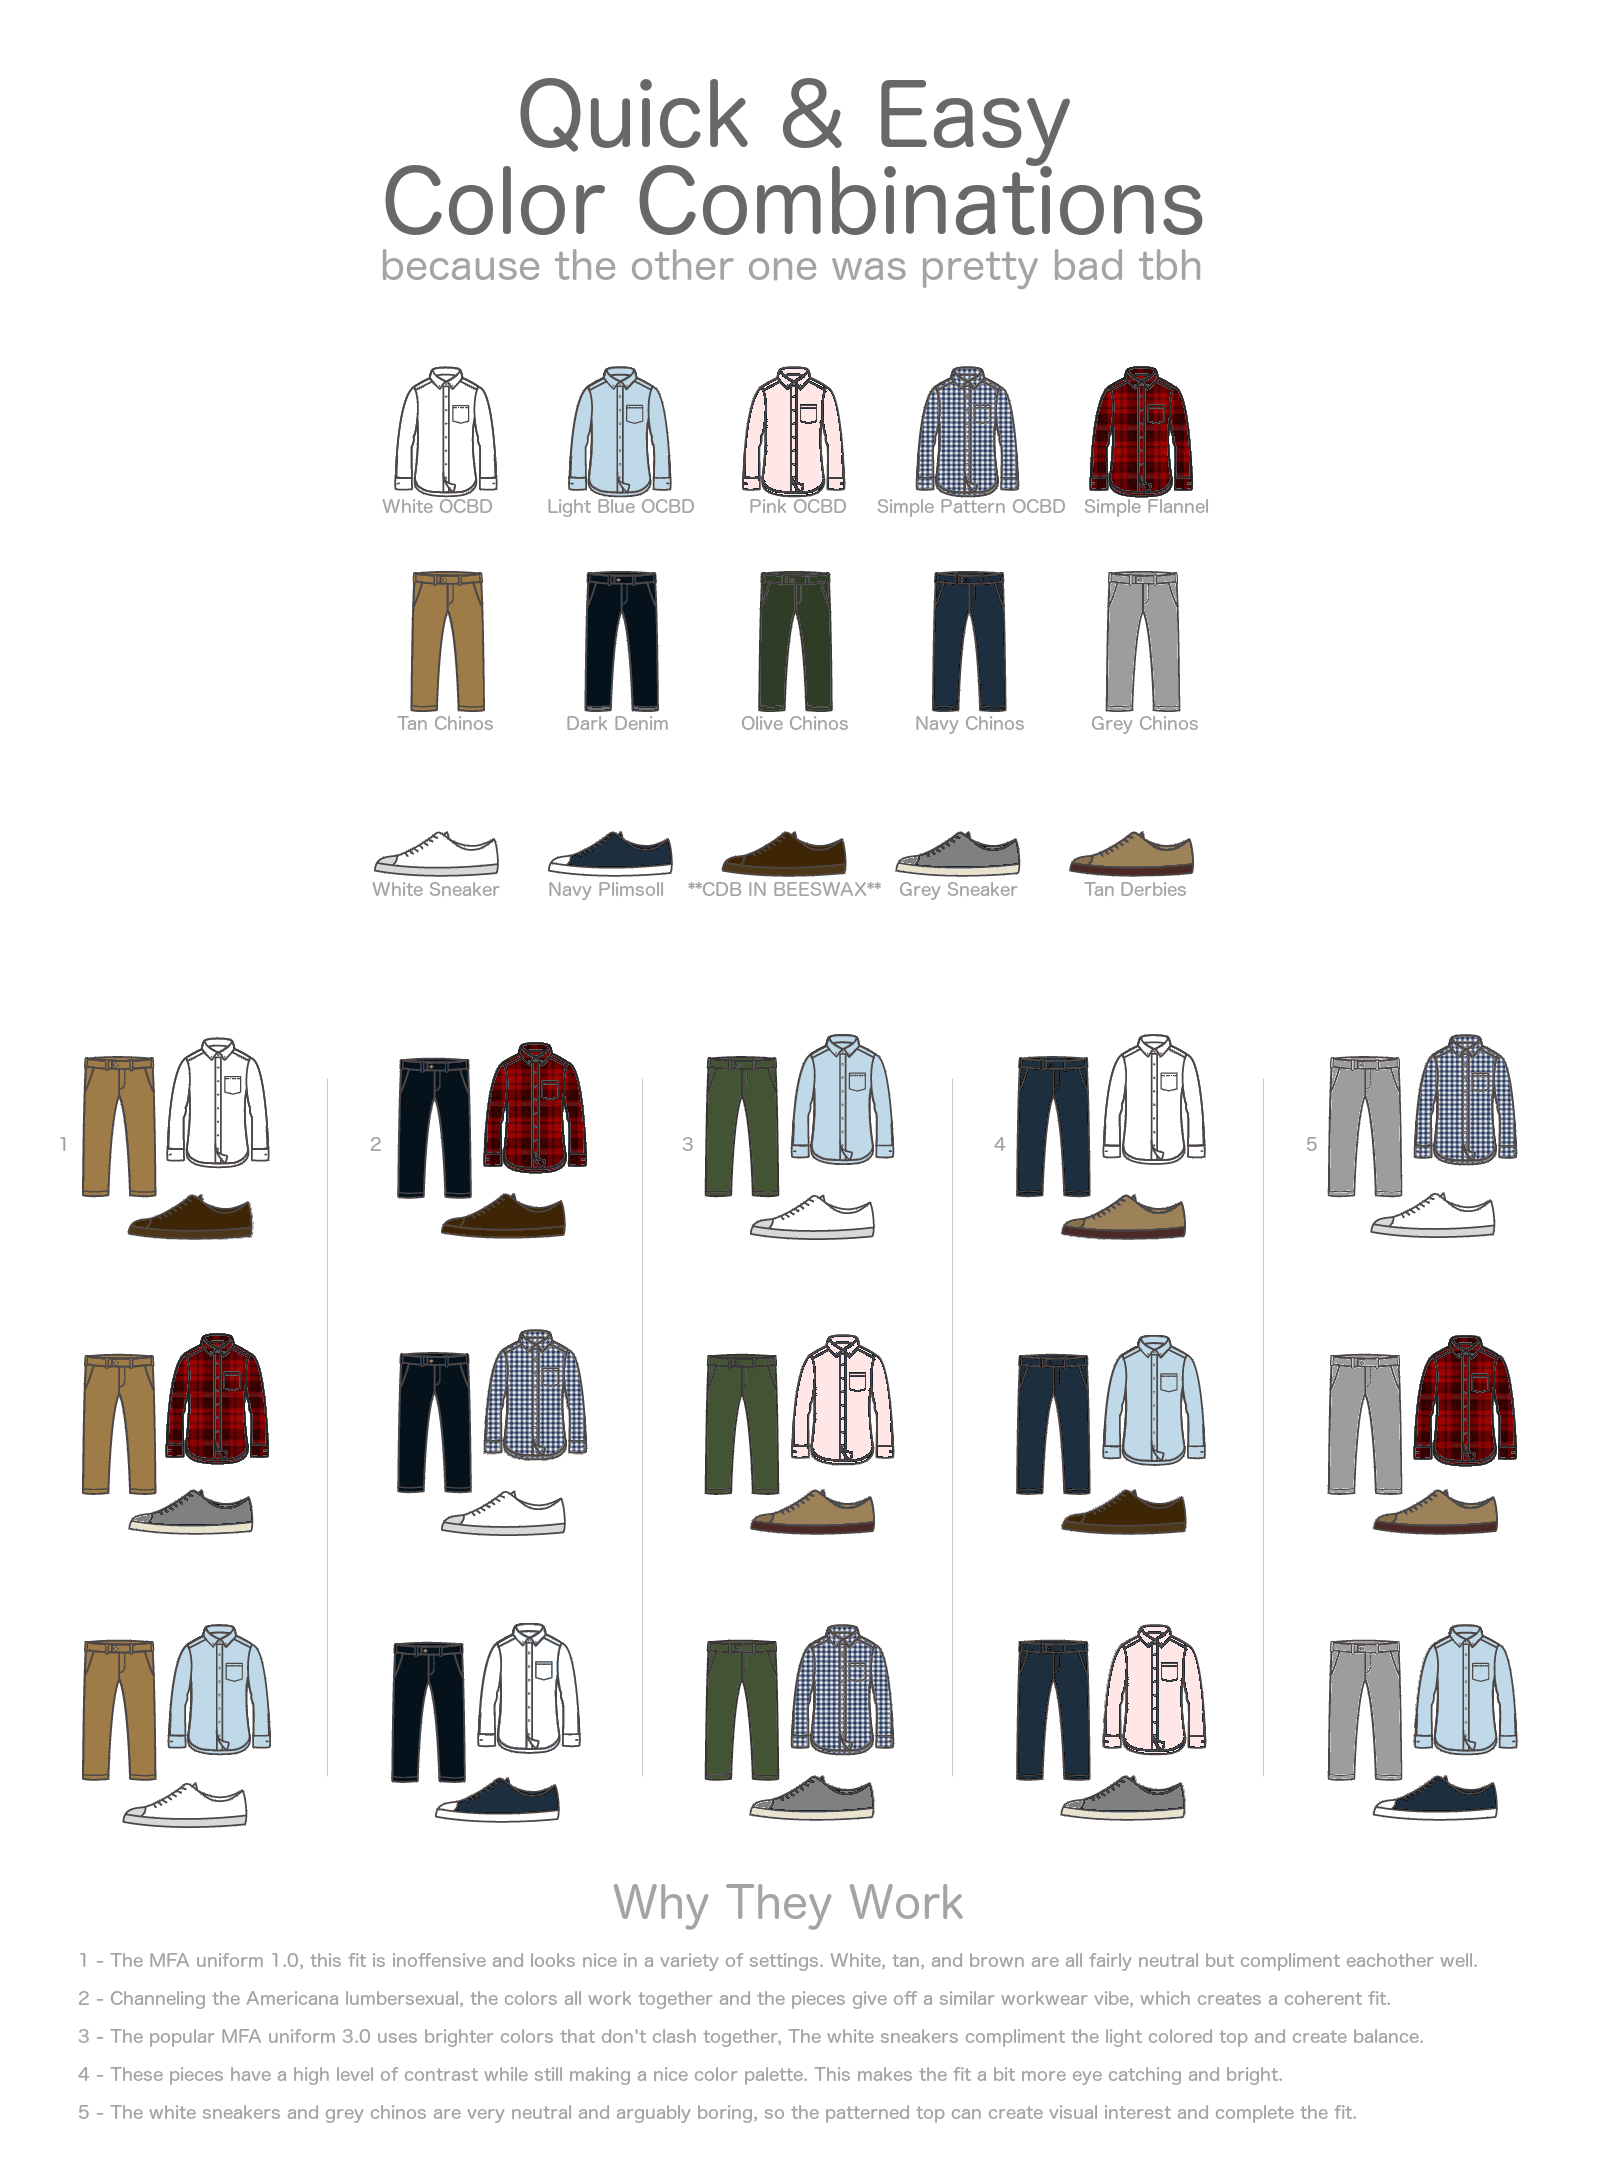 Quick & Easy color combinations for Men's clothing